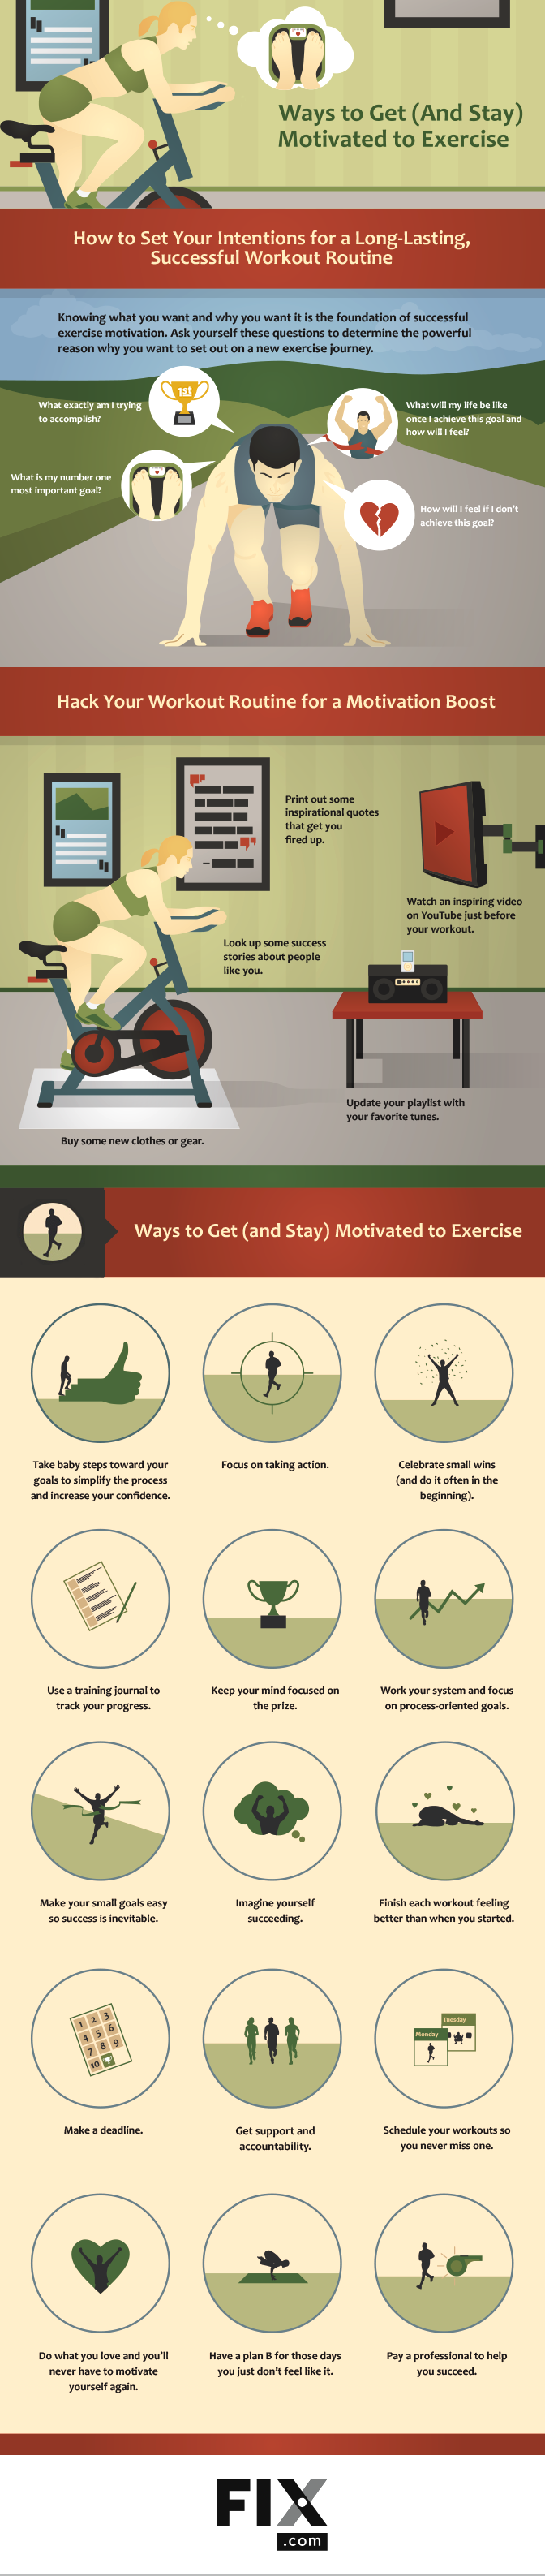 Ways to Get (and Stay) Motivated to Exercise